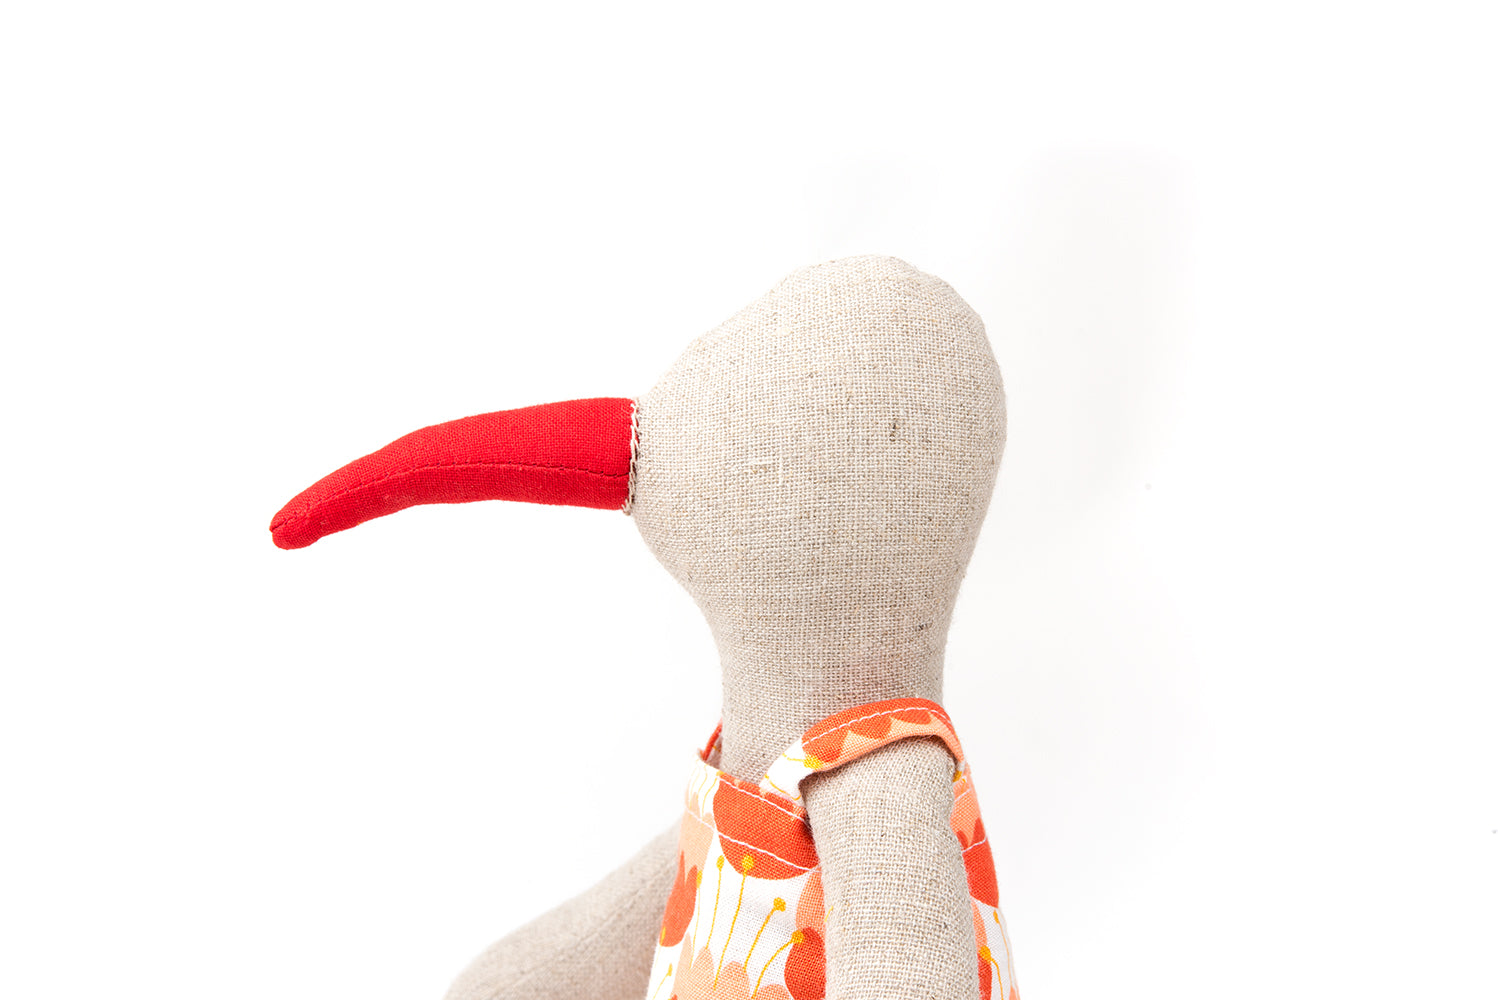 Doll for girl , Girl birthday gift doll, Bird doll, Fabric doll, Handmade doll, Eco friendly gift, Plush doll, Handmade decor doll, Duck